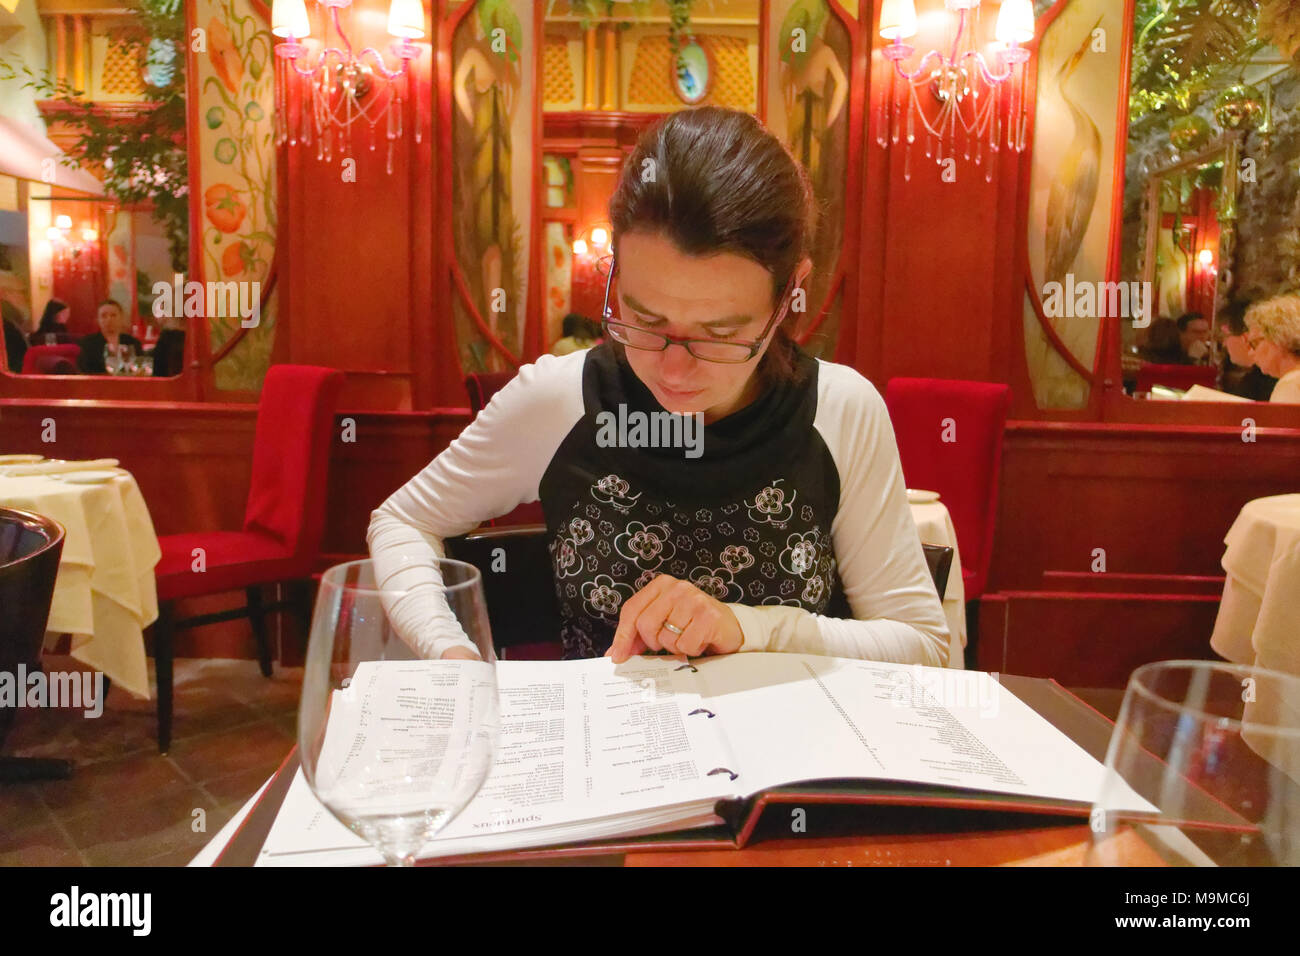 A woman looking at the wine list in the restaurant Saint Amour in Quebec City, Canada - Stock Image